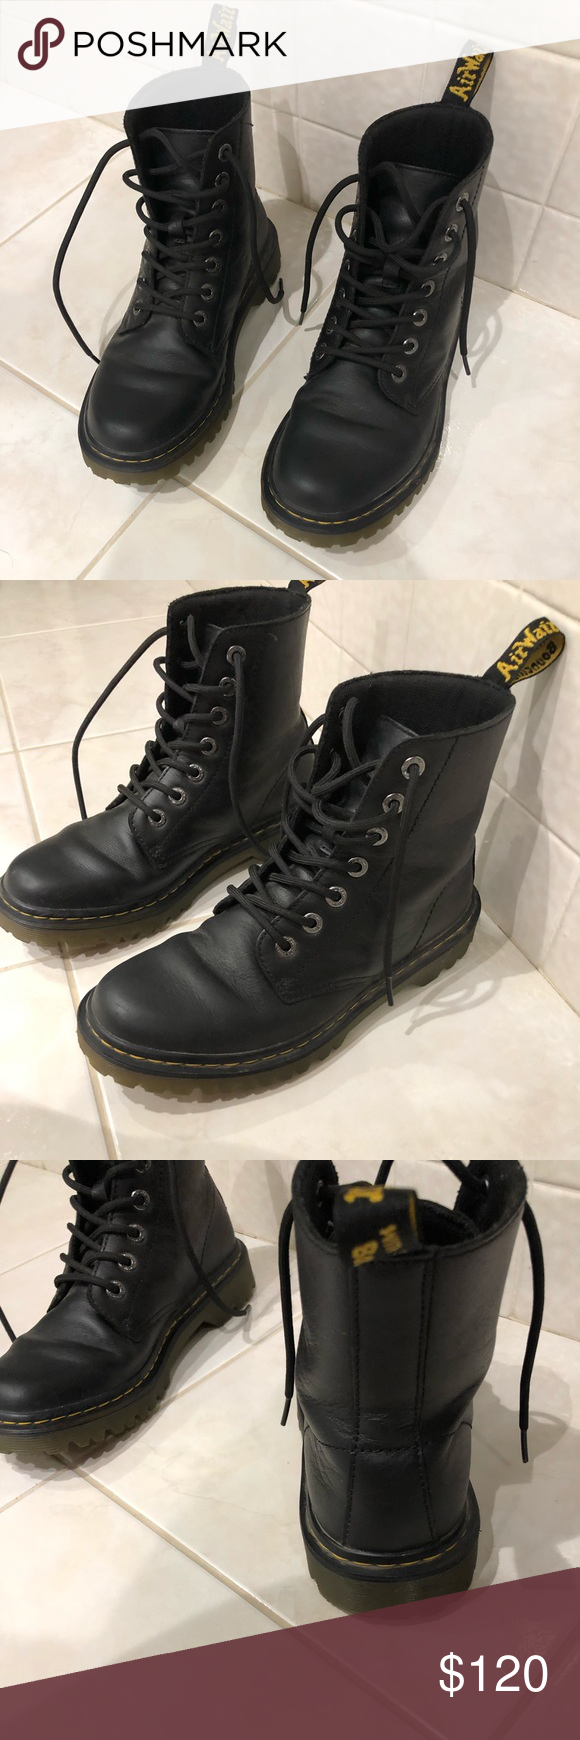 Dr. Martens Luana Leather Mid-Top Boots